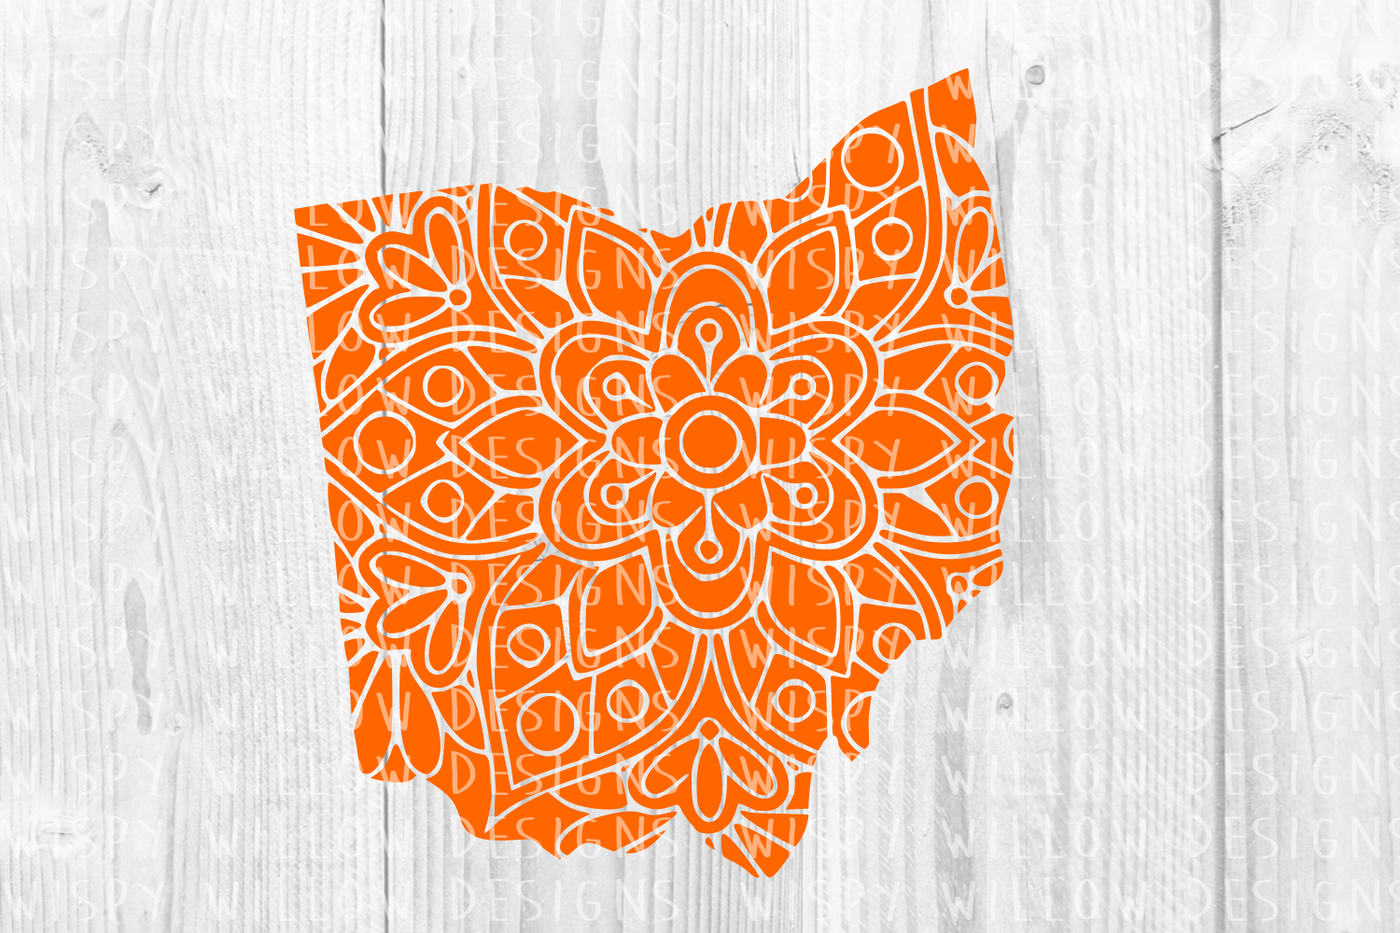 Ohio Oh State Mandala Svg Dxf Eps Png Jpg Pdf By Wispy Willow